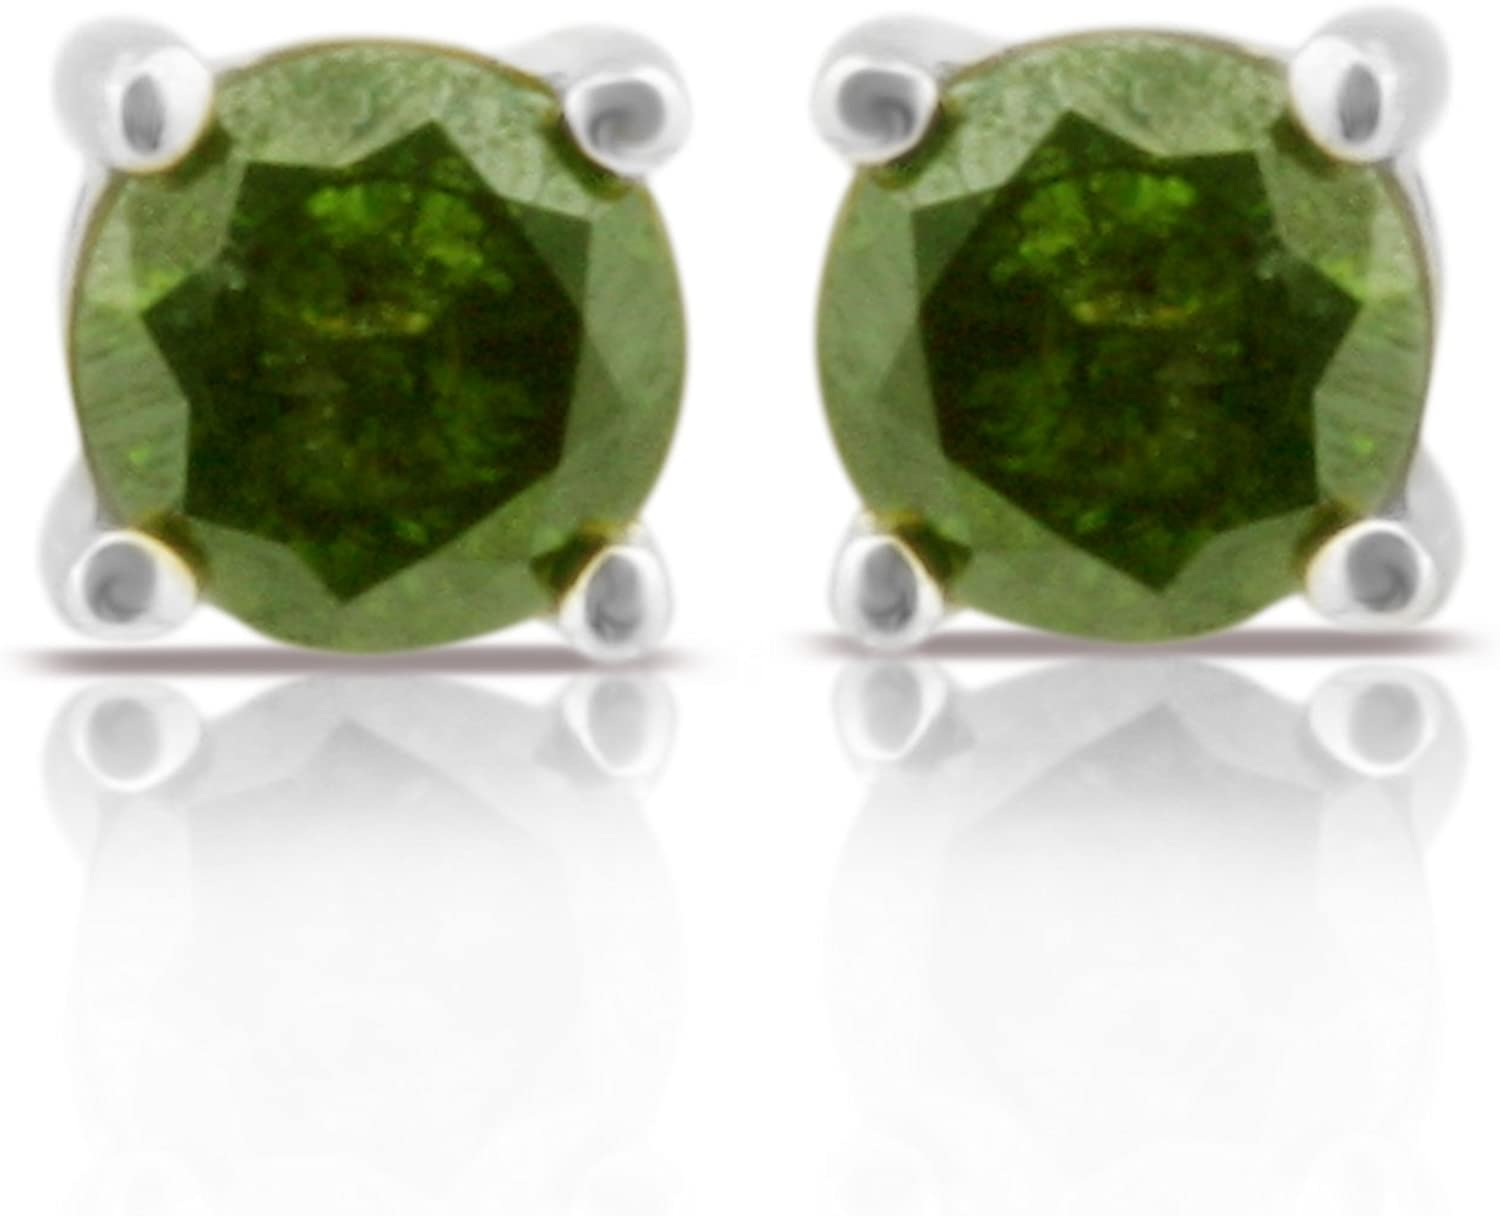 White Gold Plated Silver Prism Jewel 0.33 Carat Round Green Diamond Screw Back Prong Set Stud Earrings